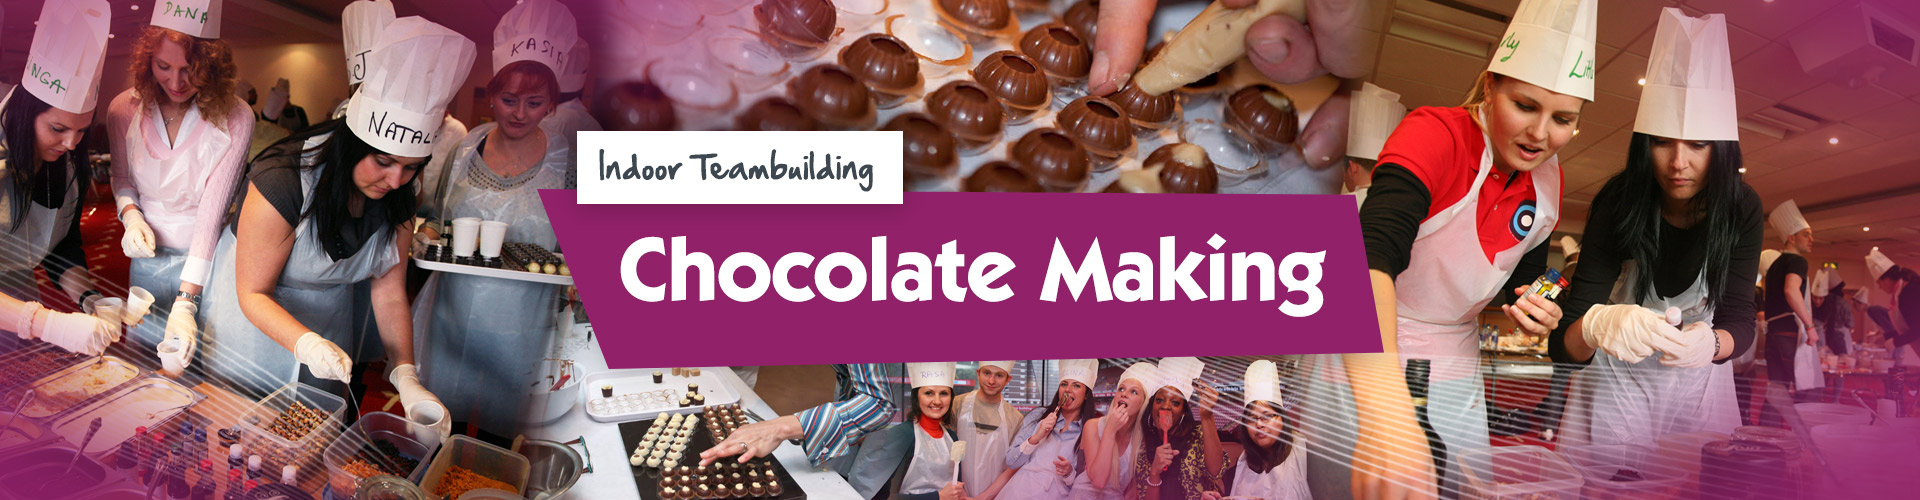 Chocolate Making Team Building Event